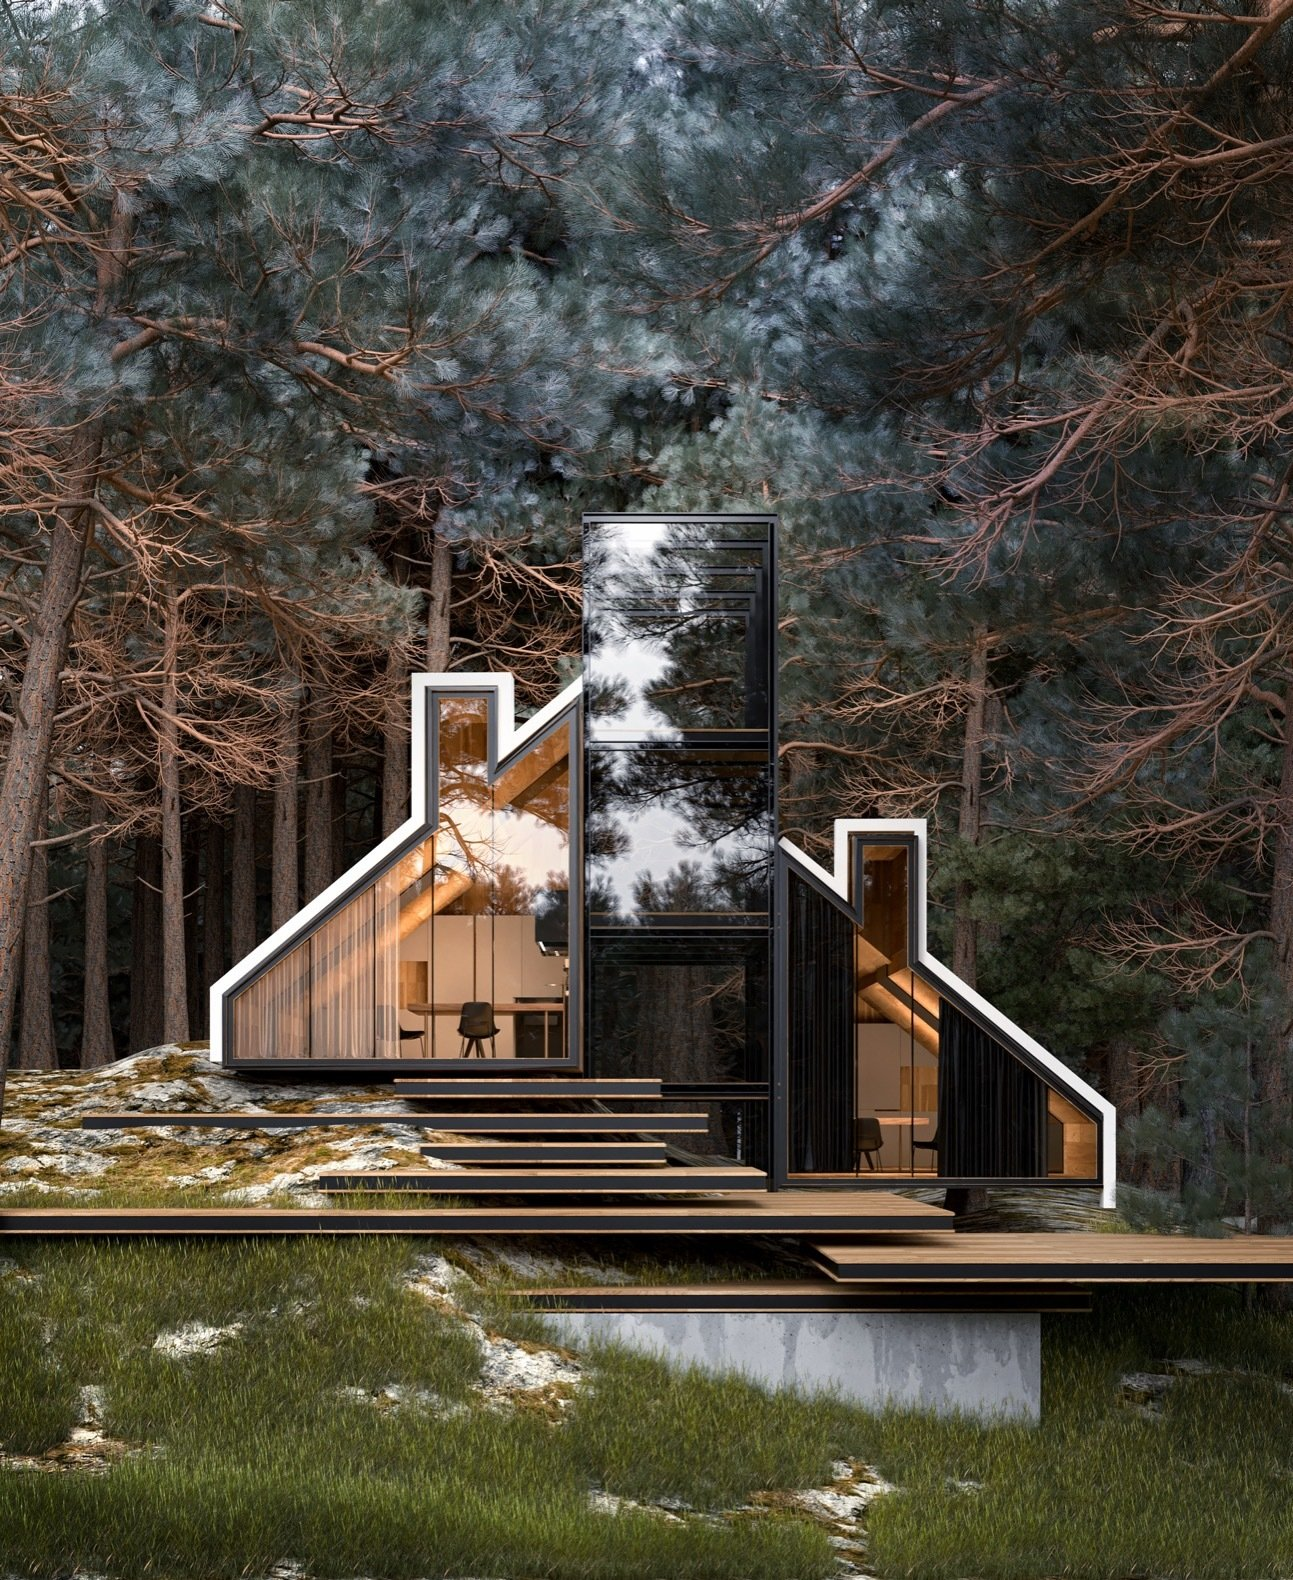 A Russian Architect's Ethereal Glass Houses Have Captivated the Internet